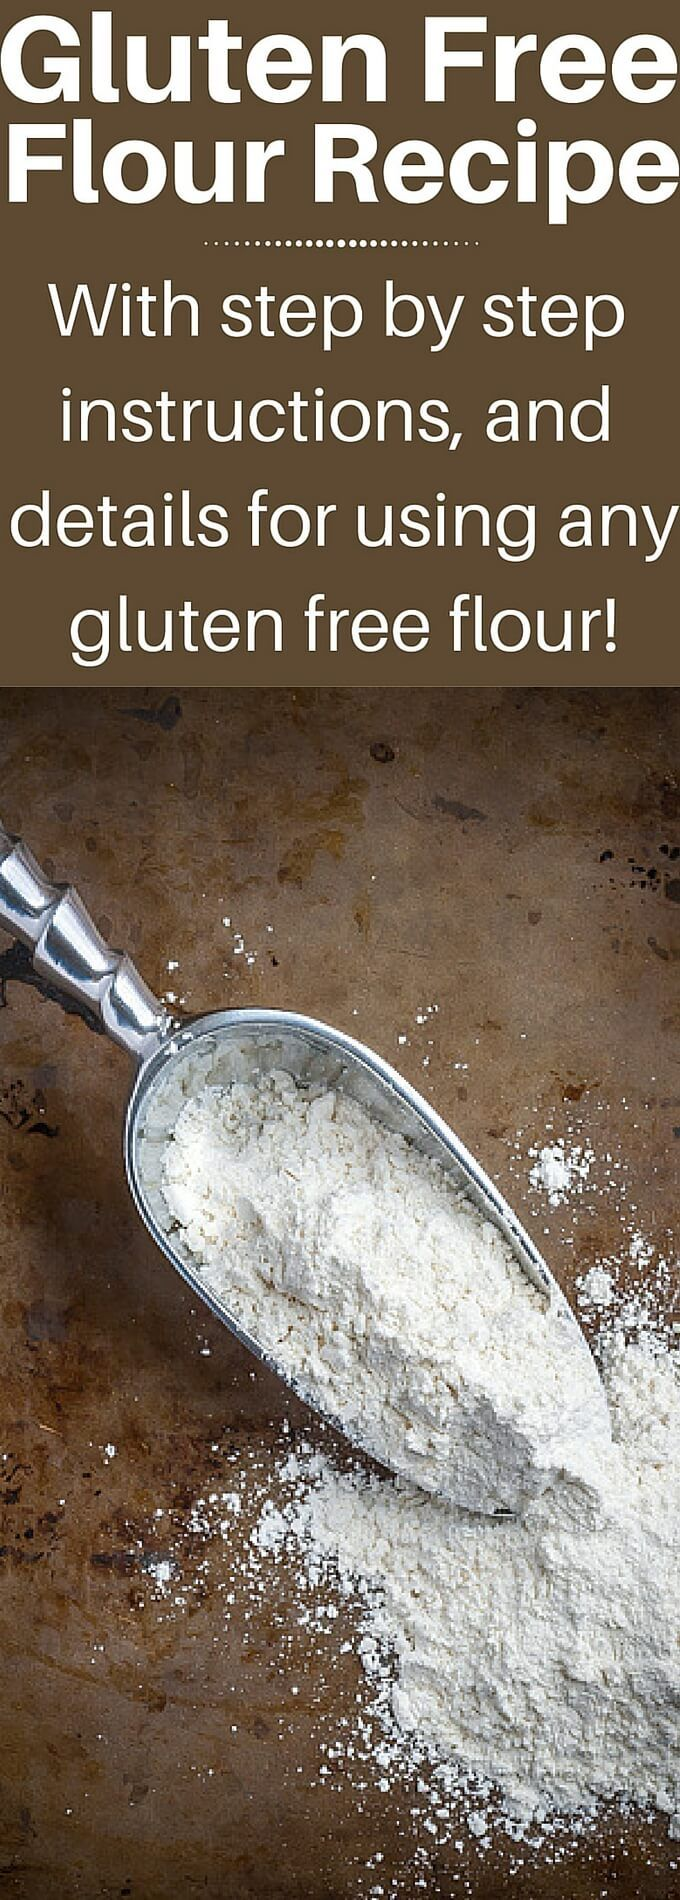 Super easy step by step instructions for creating your own gluten free flour blend recipe at home! It's so much cheaper than ready made and you will get better results, details on all the most common Gluten Free Flour options in the post! | noshtastic.com